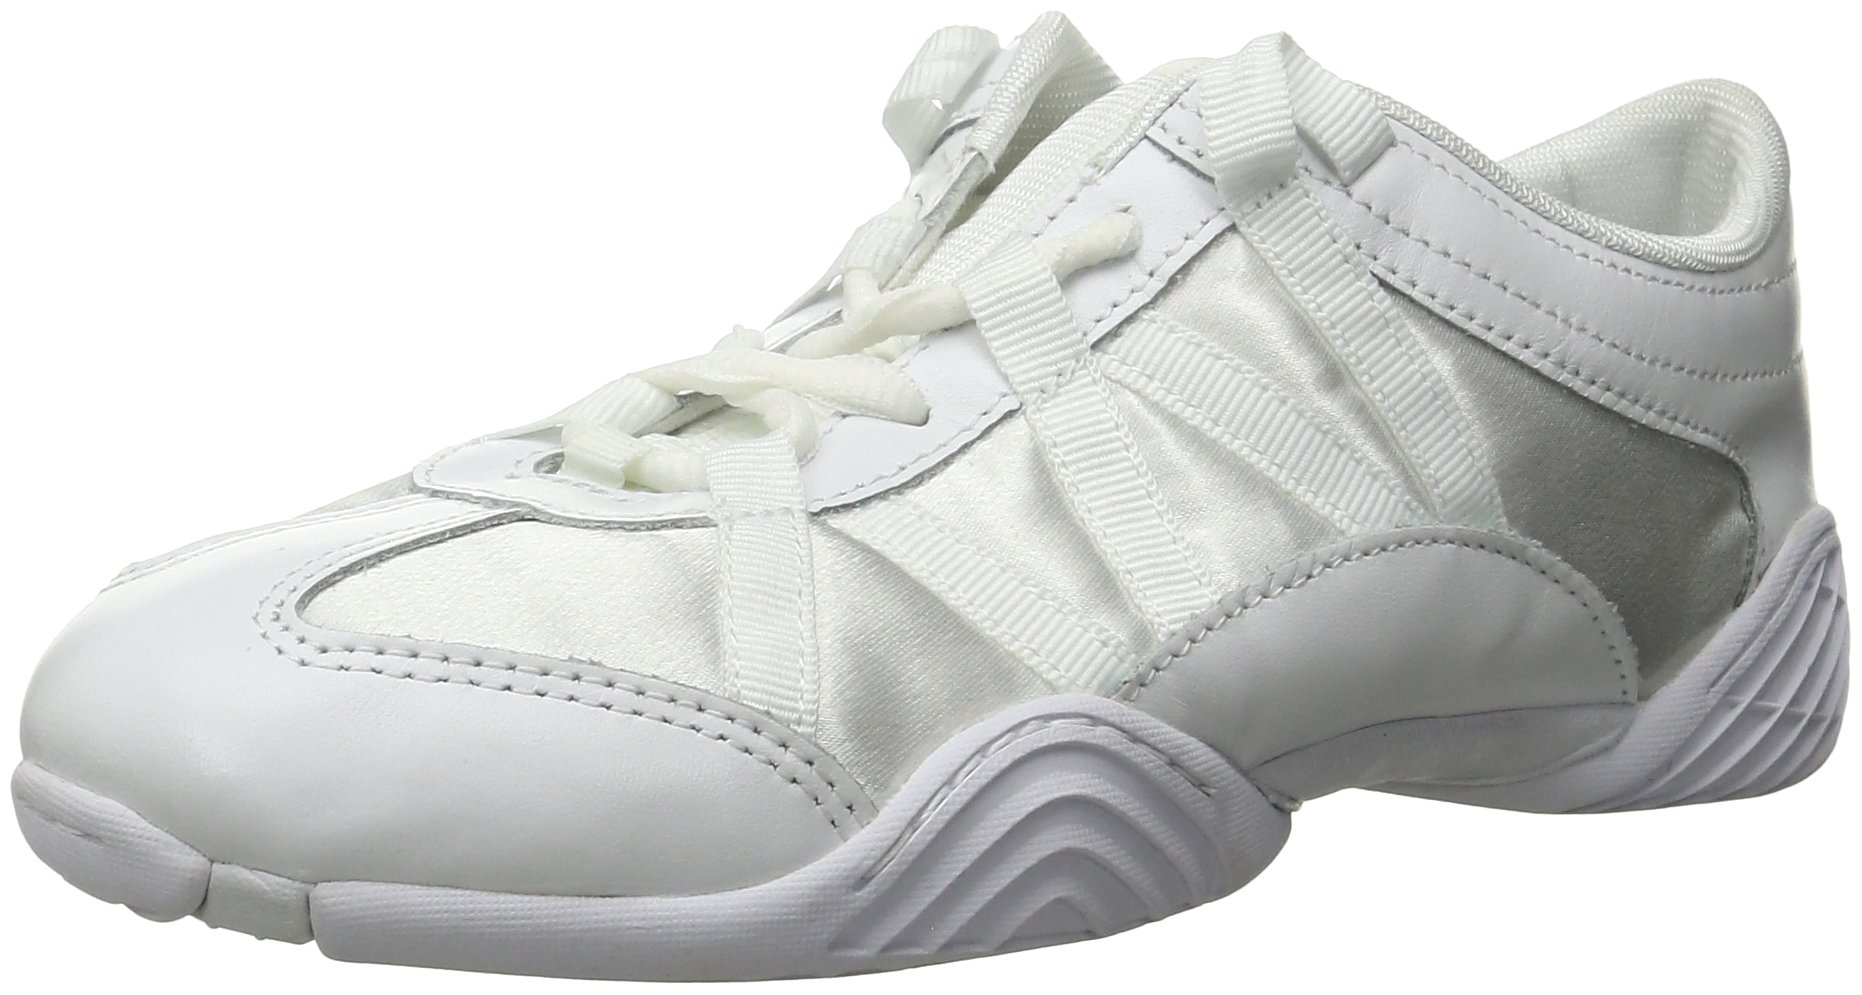 Nfinity Adult Evolution Cheer Shoes, White, 9.5 by Nfinity